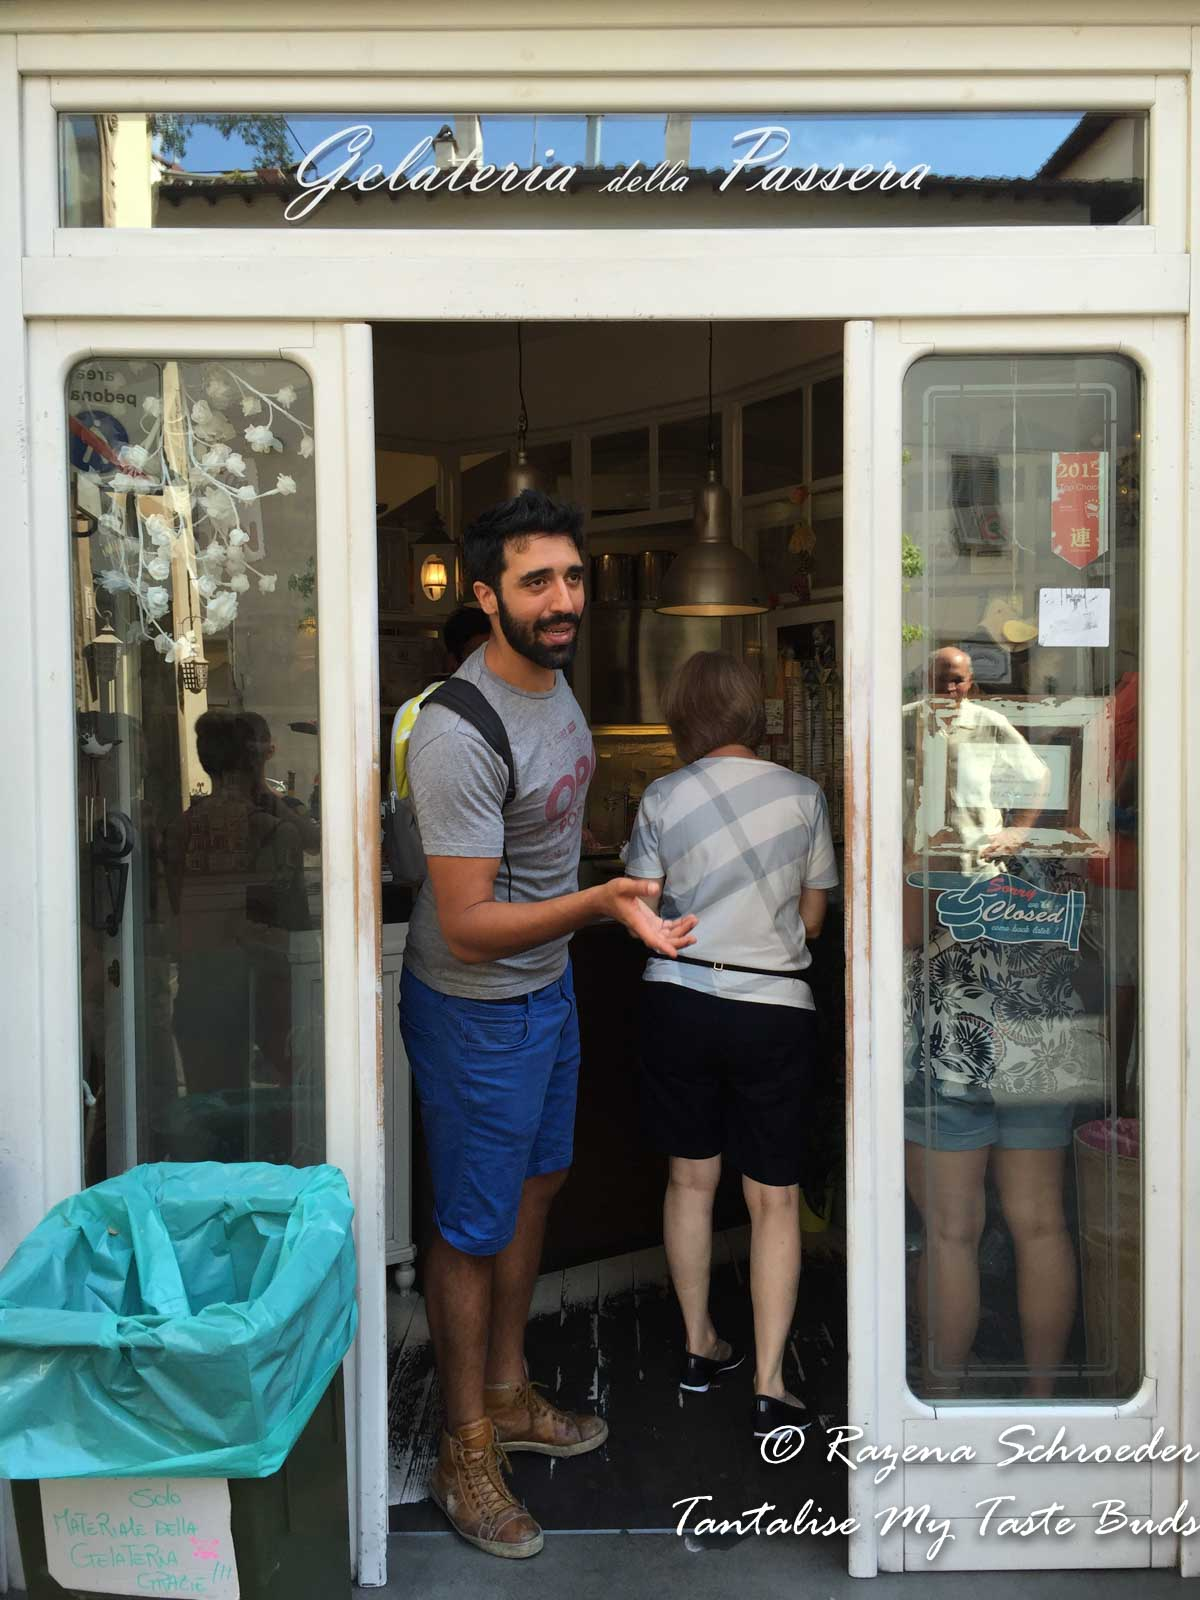 Gelateria della Passera on Florence food tour